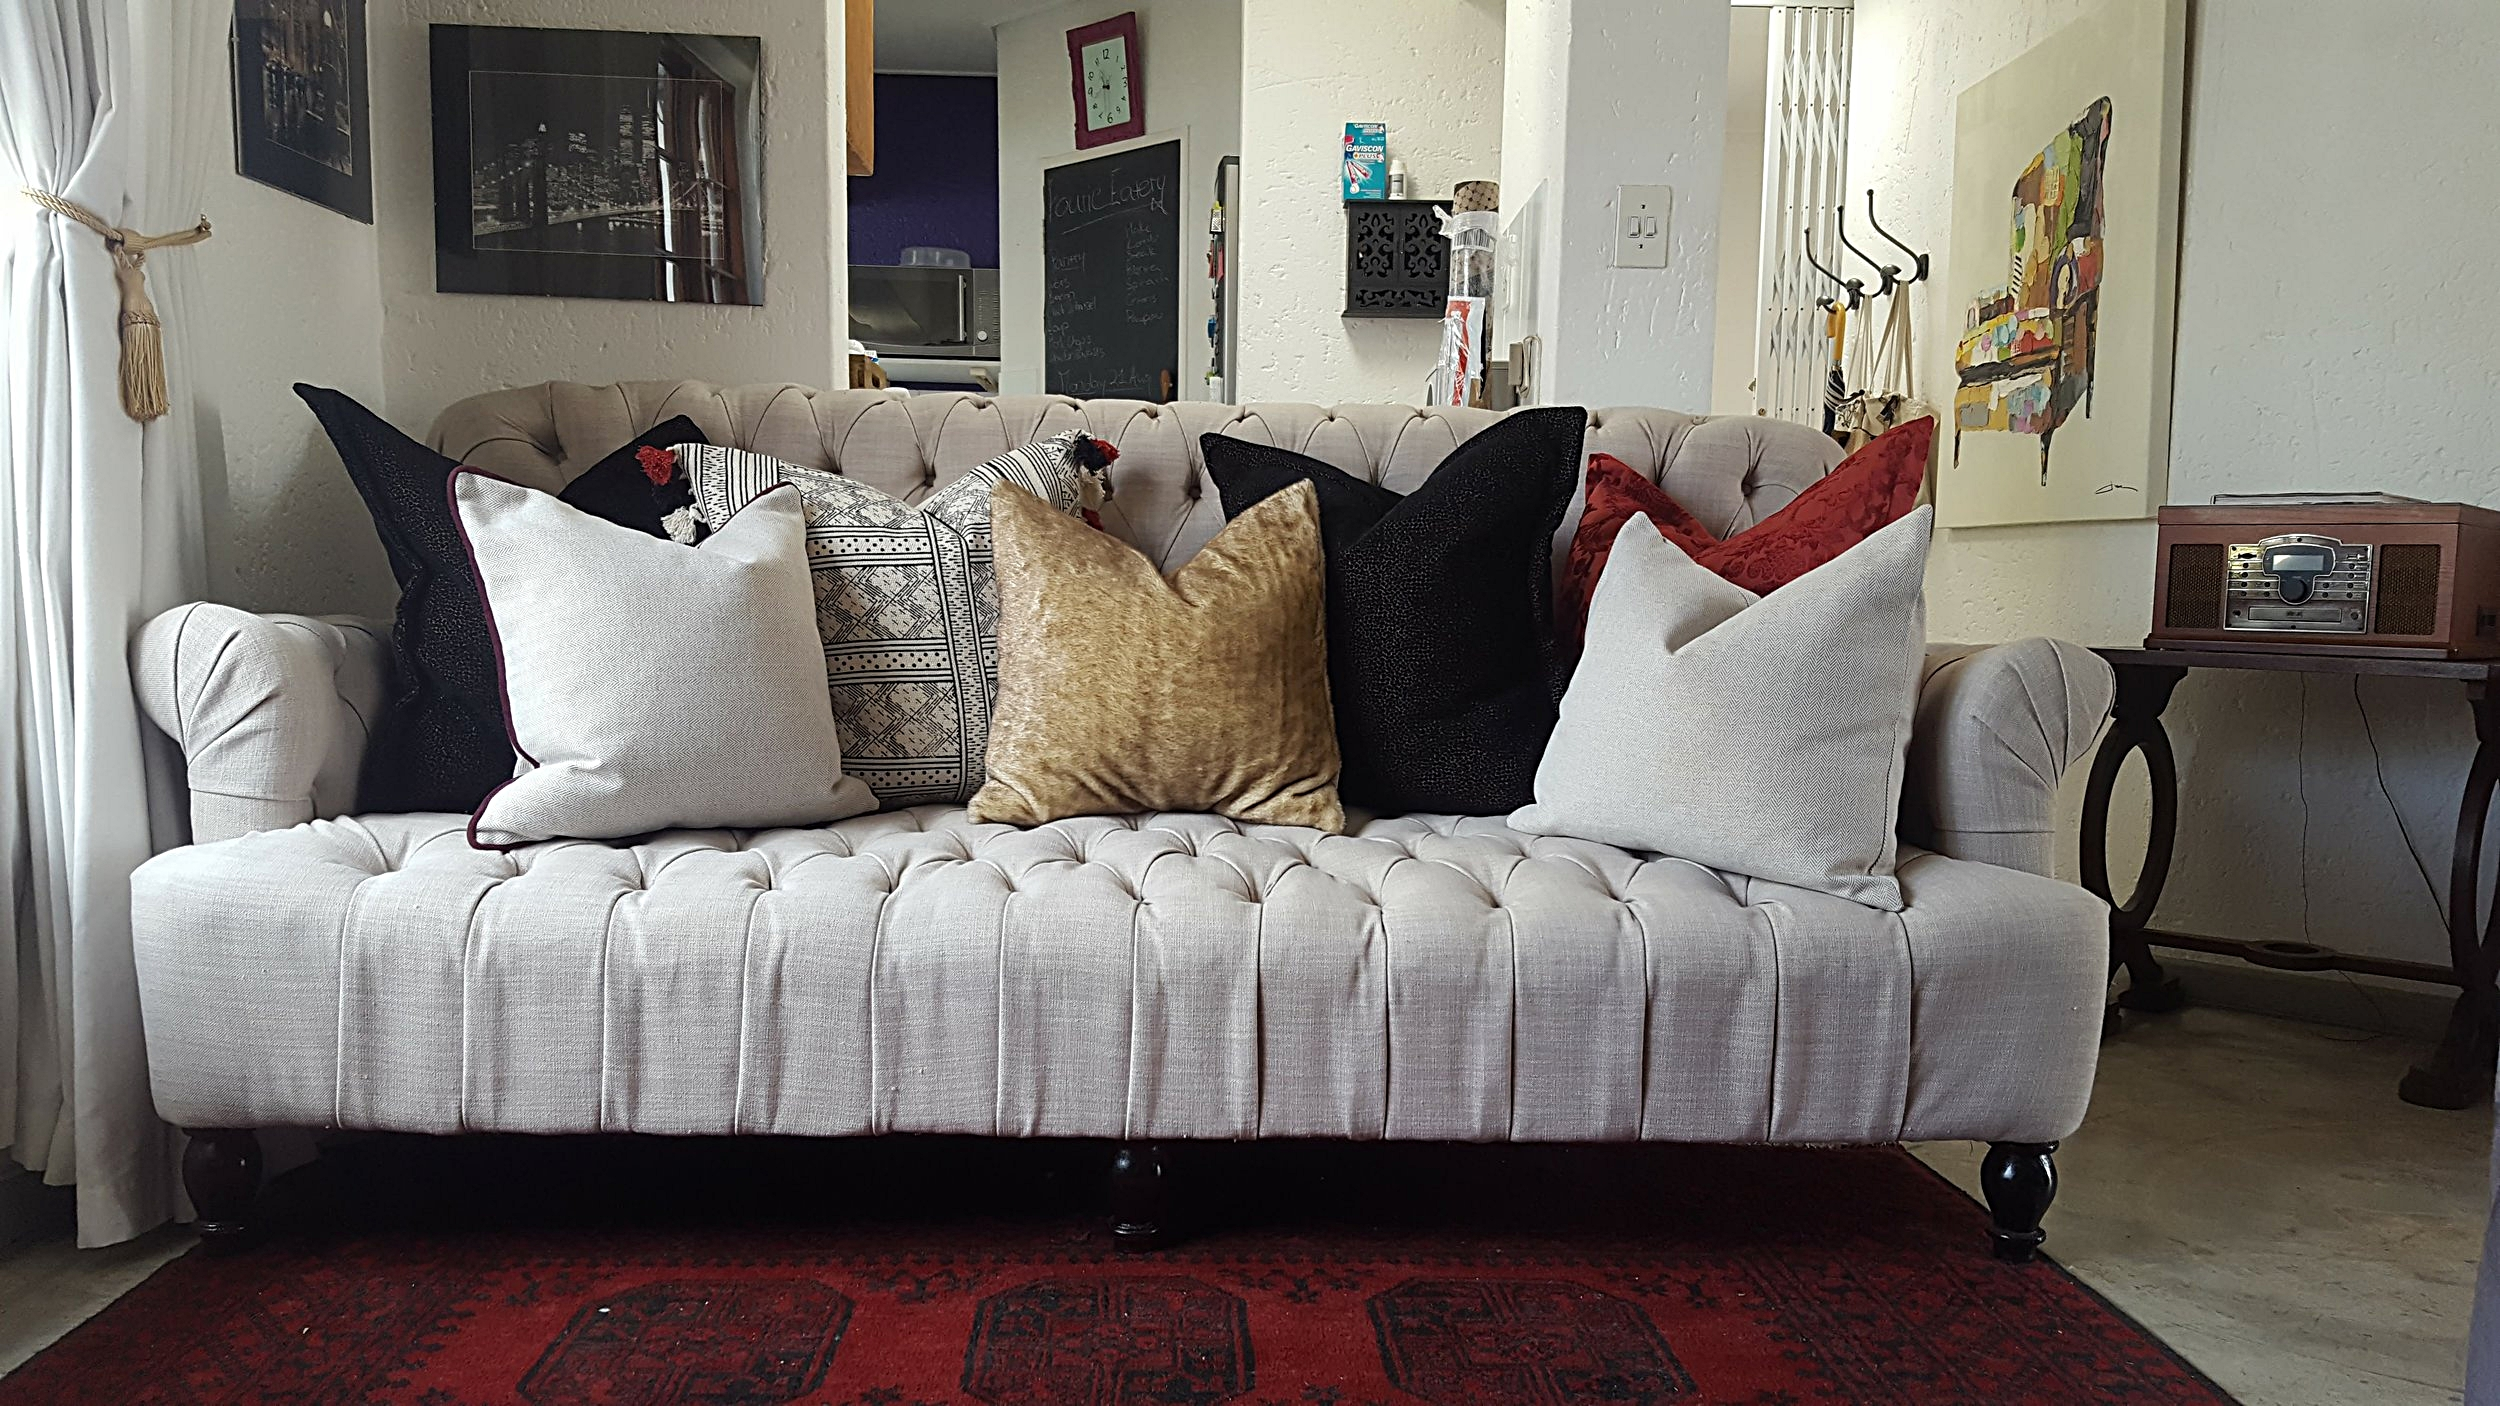 A feature couch with very a carefully designed scatter cushion collection by Tassels & Tigers Interior Designer and Decorator in Johannesburg, South Africa